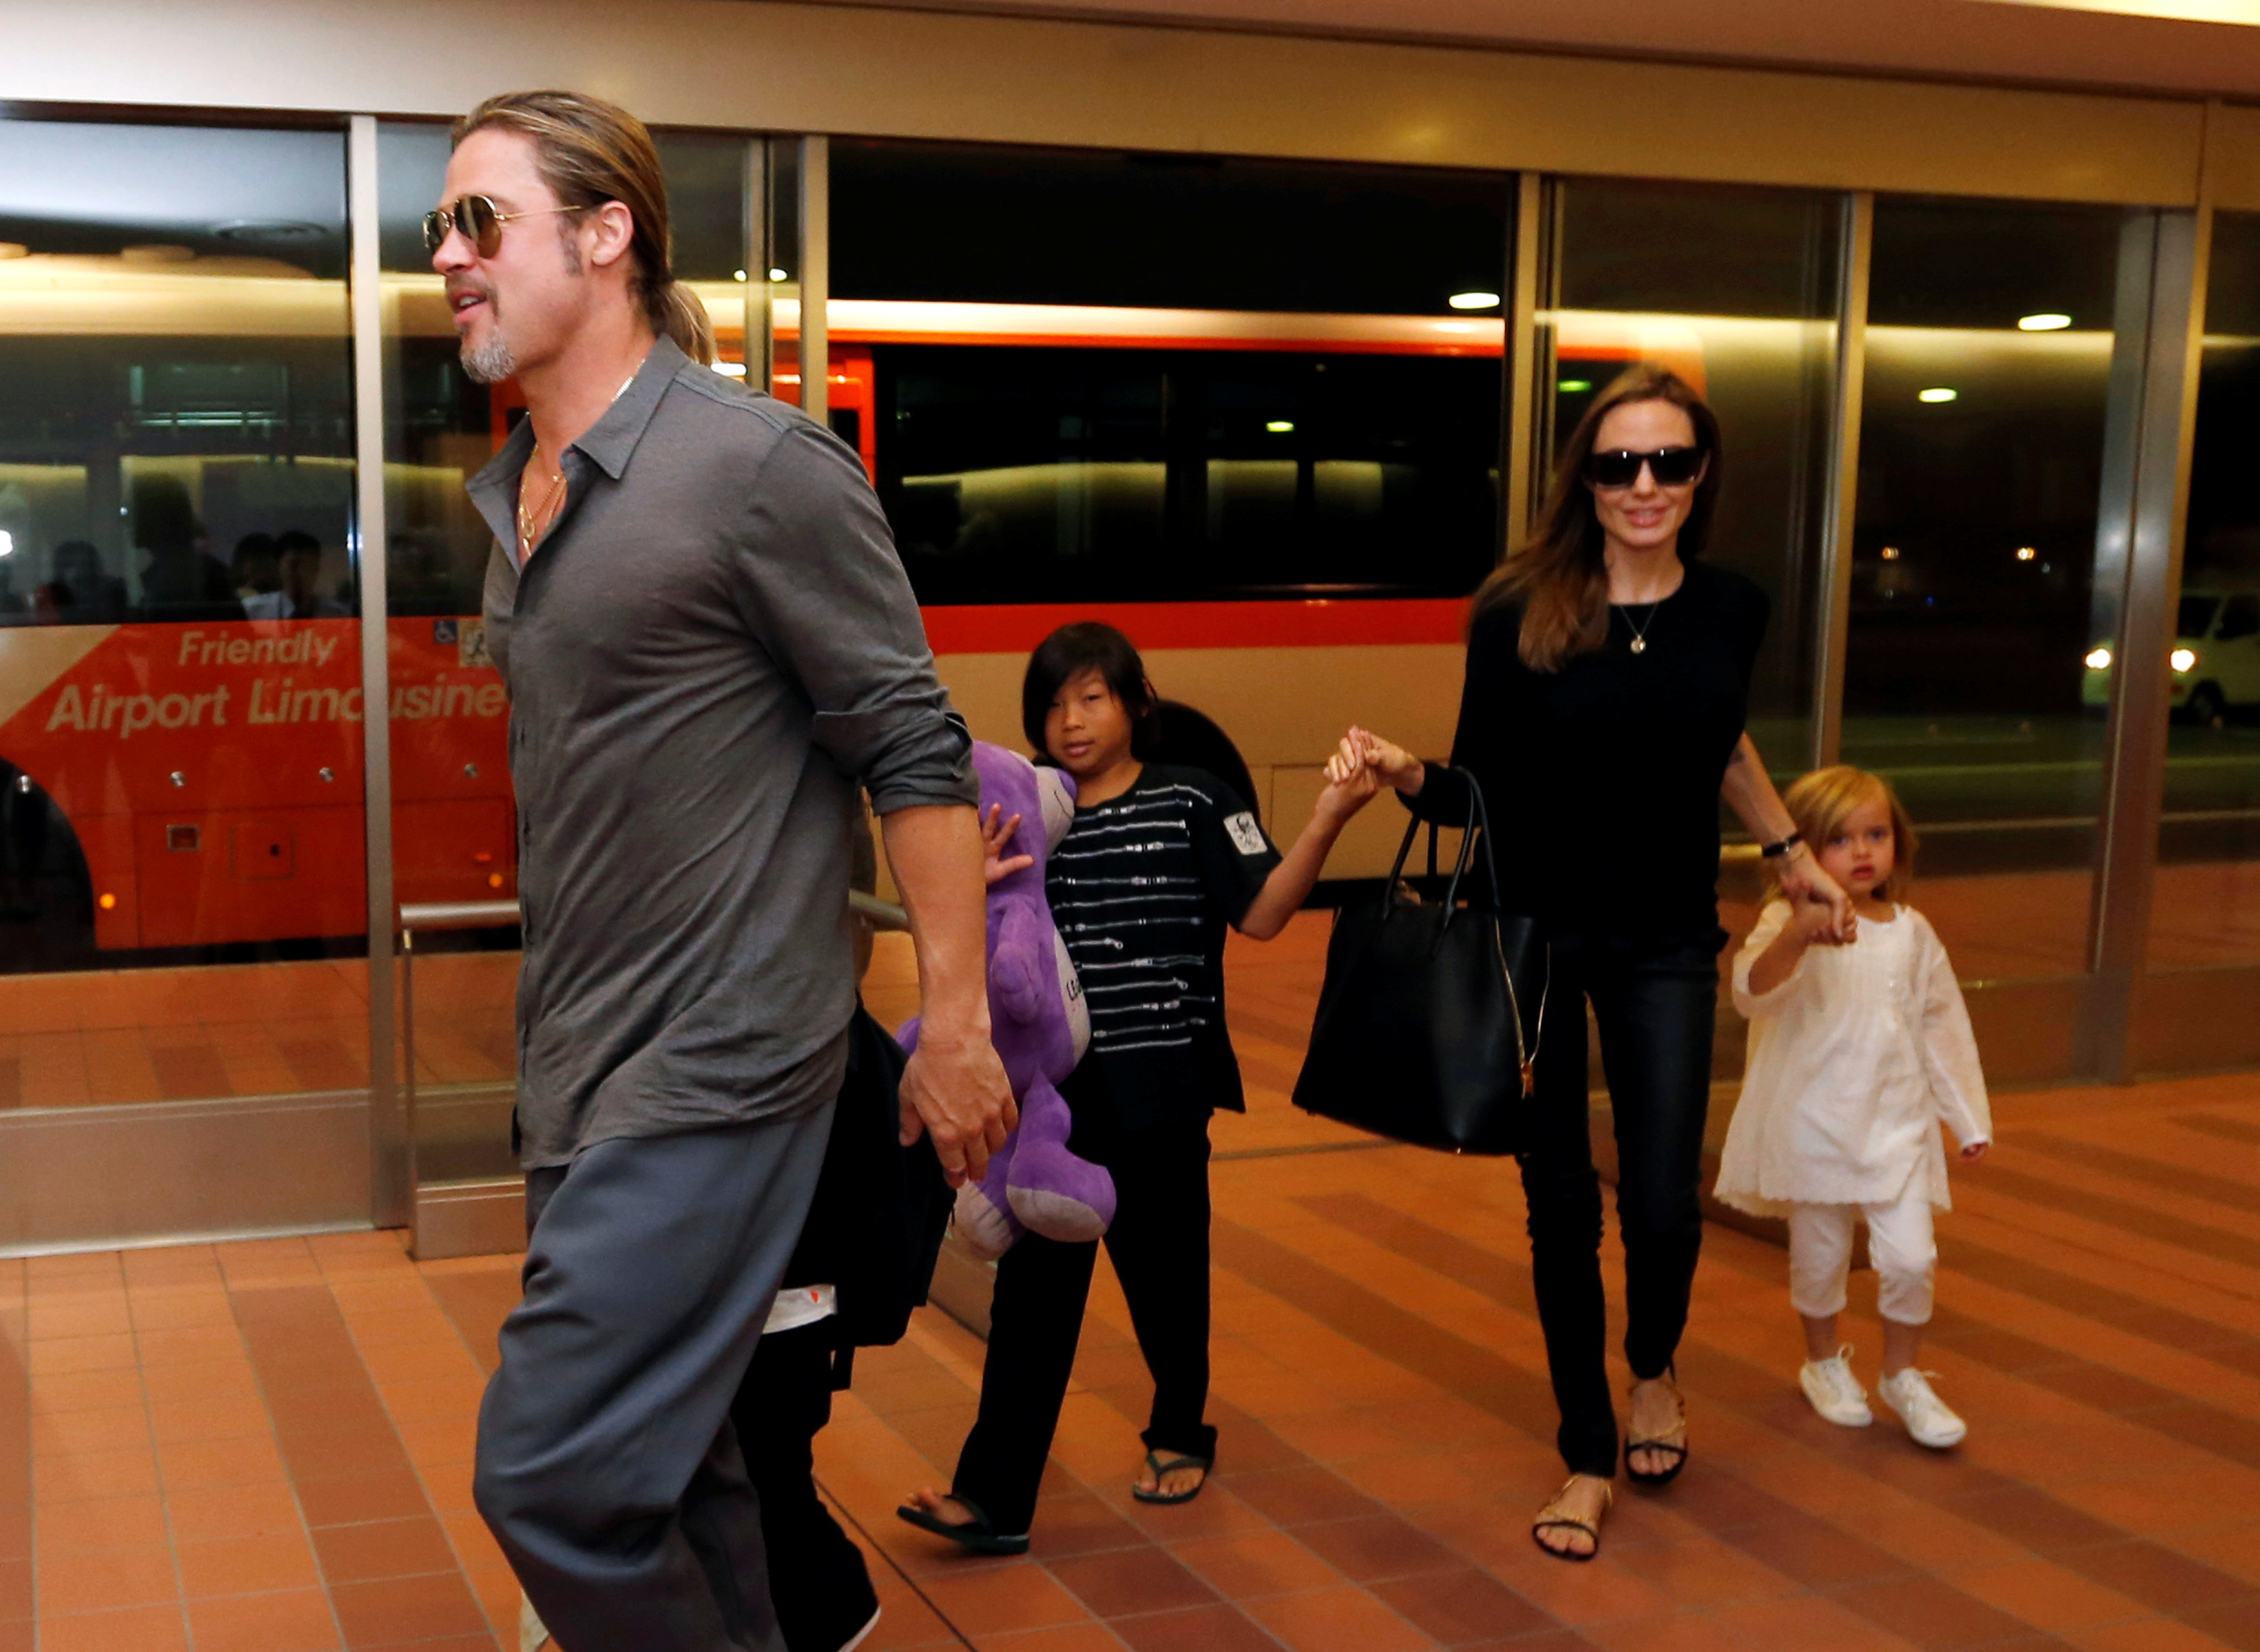 Hollywood actors Brad Pitt (L) and actress Angelina Jolie (2nd R) arrive with their children Knox (beside Pitt), Vivienne (R) and Pax (C) at Haneda international airport in Tokyo, Japan on July 28, 2013.  REUTERS/Issei Kato/File Photo/File Photo